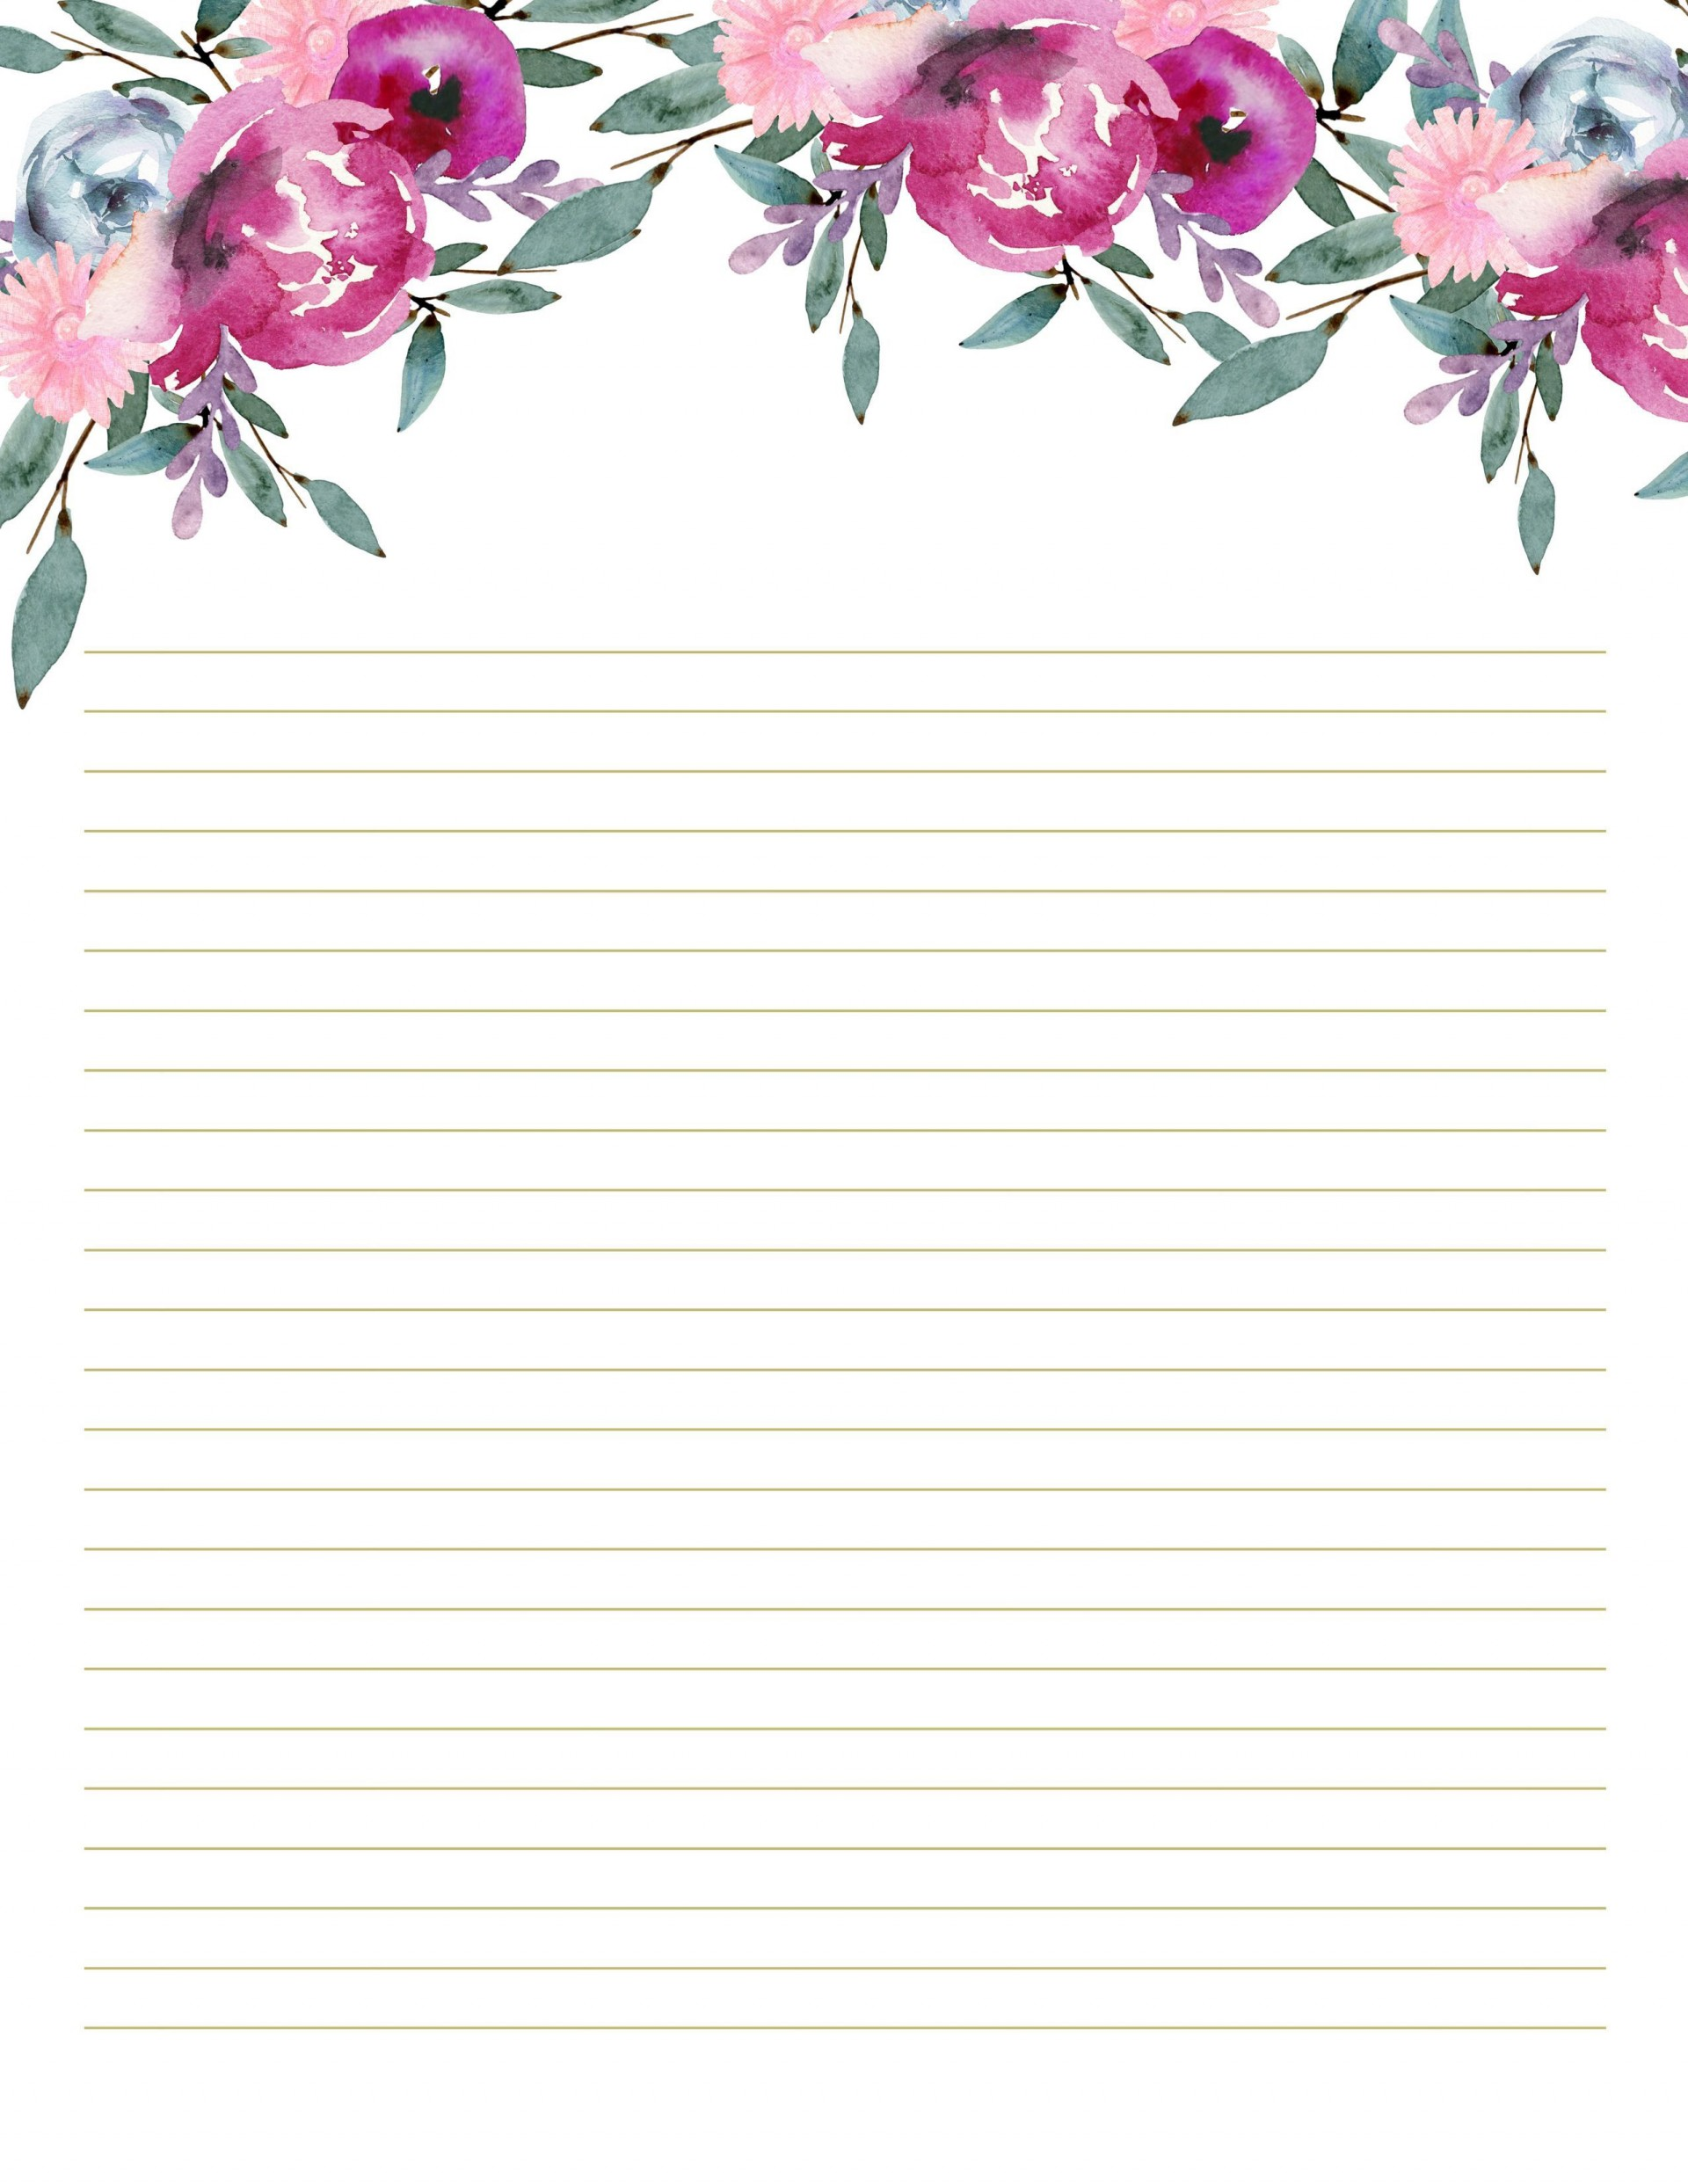 002 Unique Free Printable Stationery Paper Template High Resolution  Templates1920